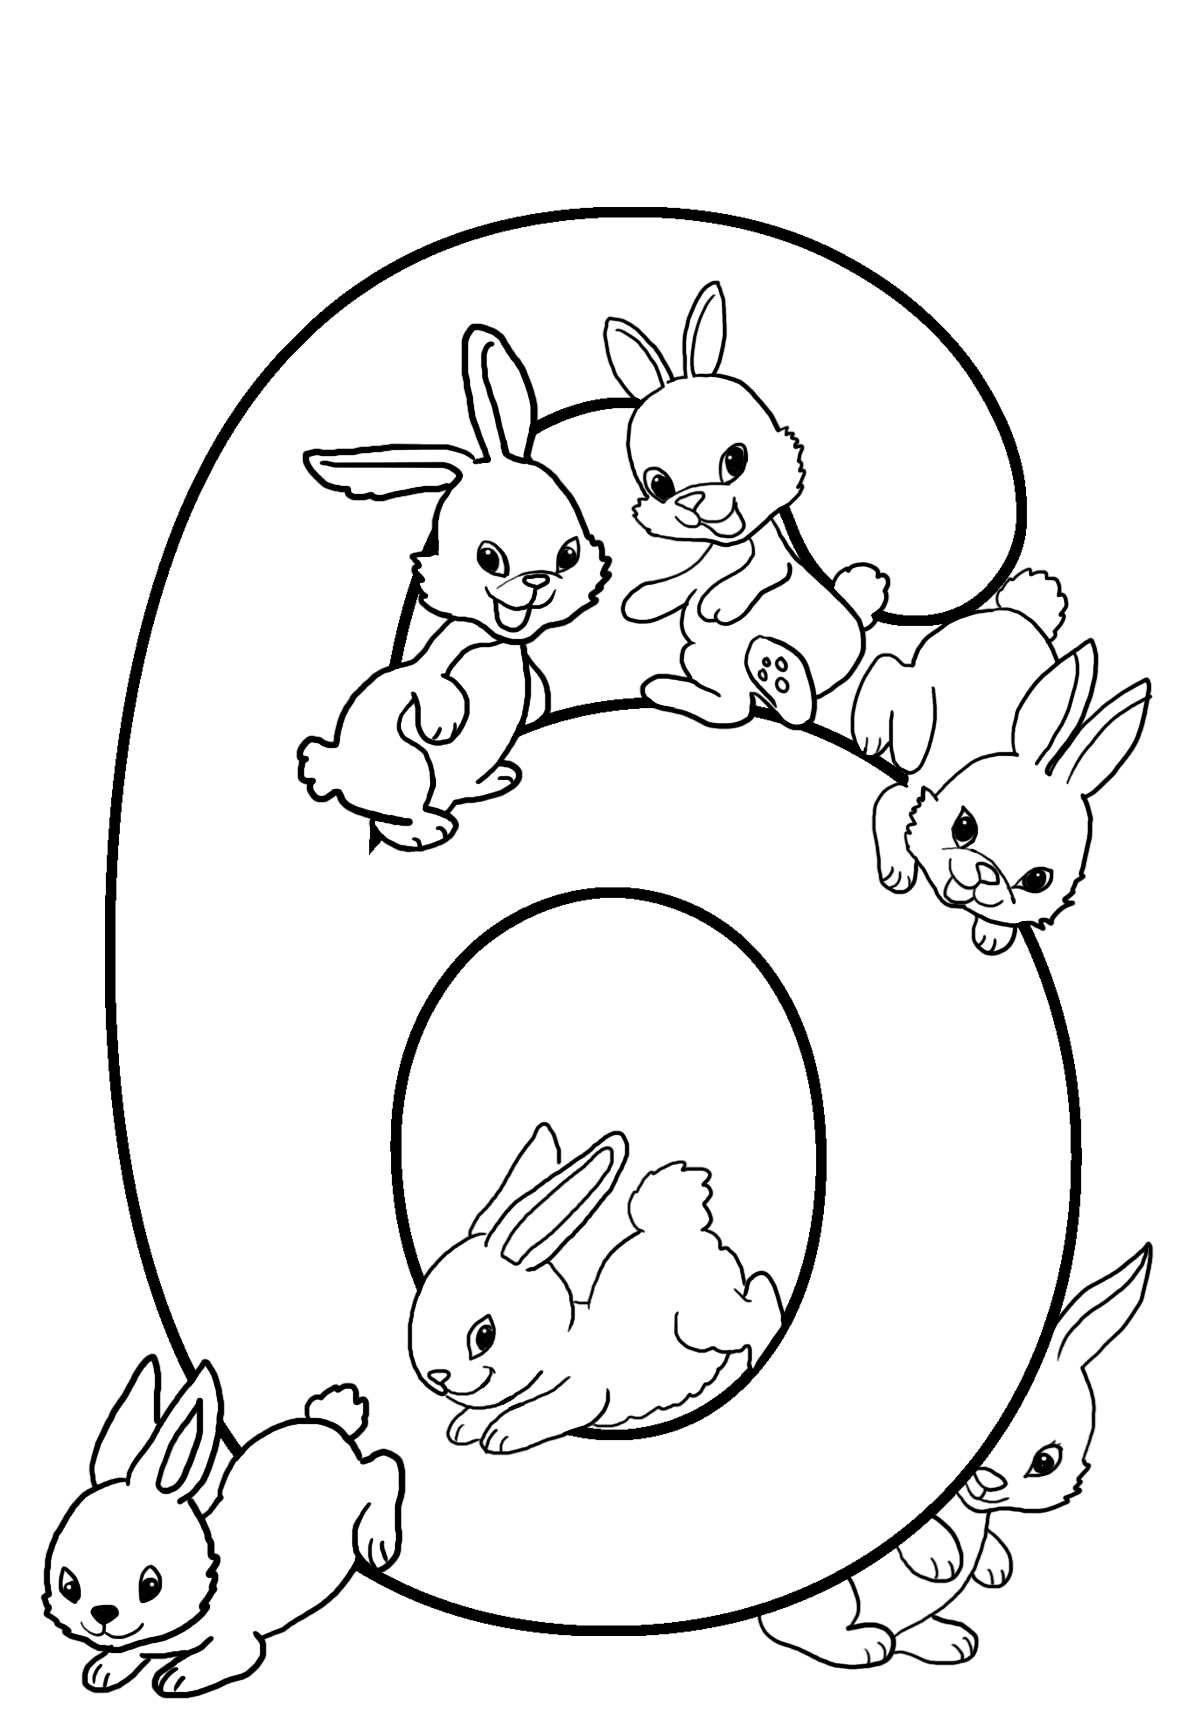 6th birthday coloring sheet